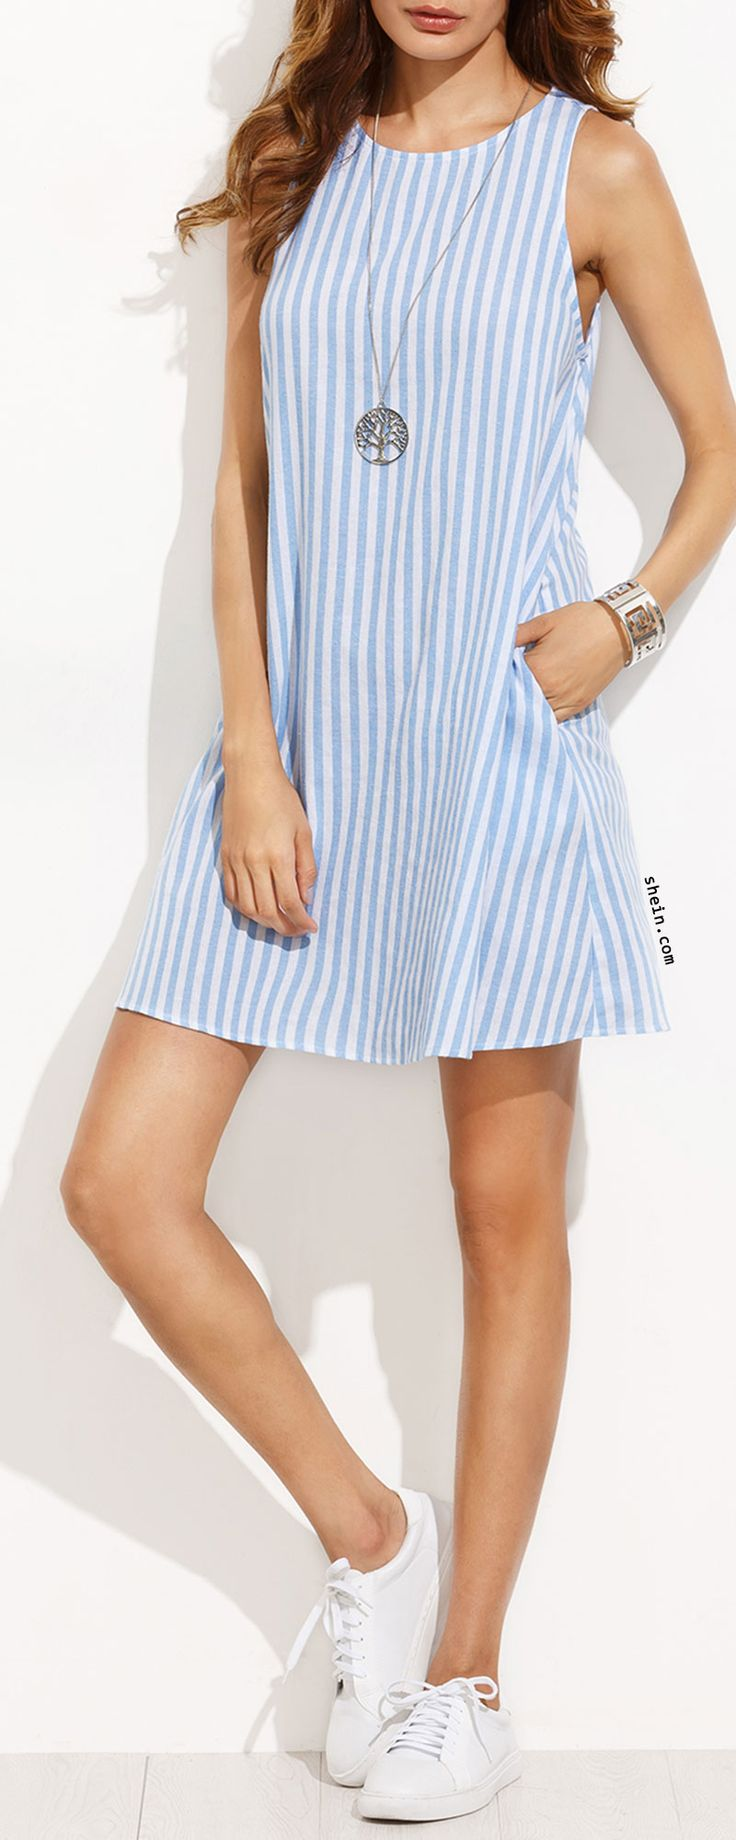 Blue and White Stripe Sleeveless Shift Dress   Supernatural Style